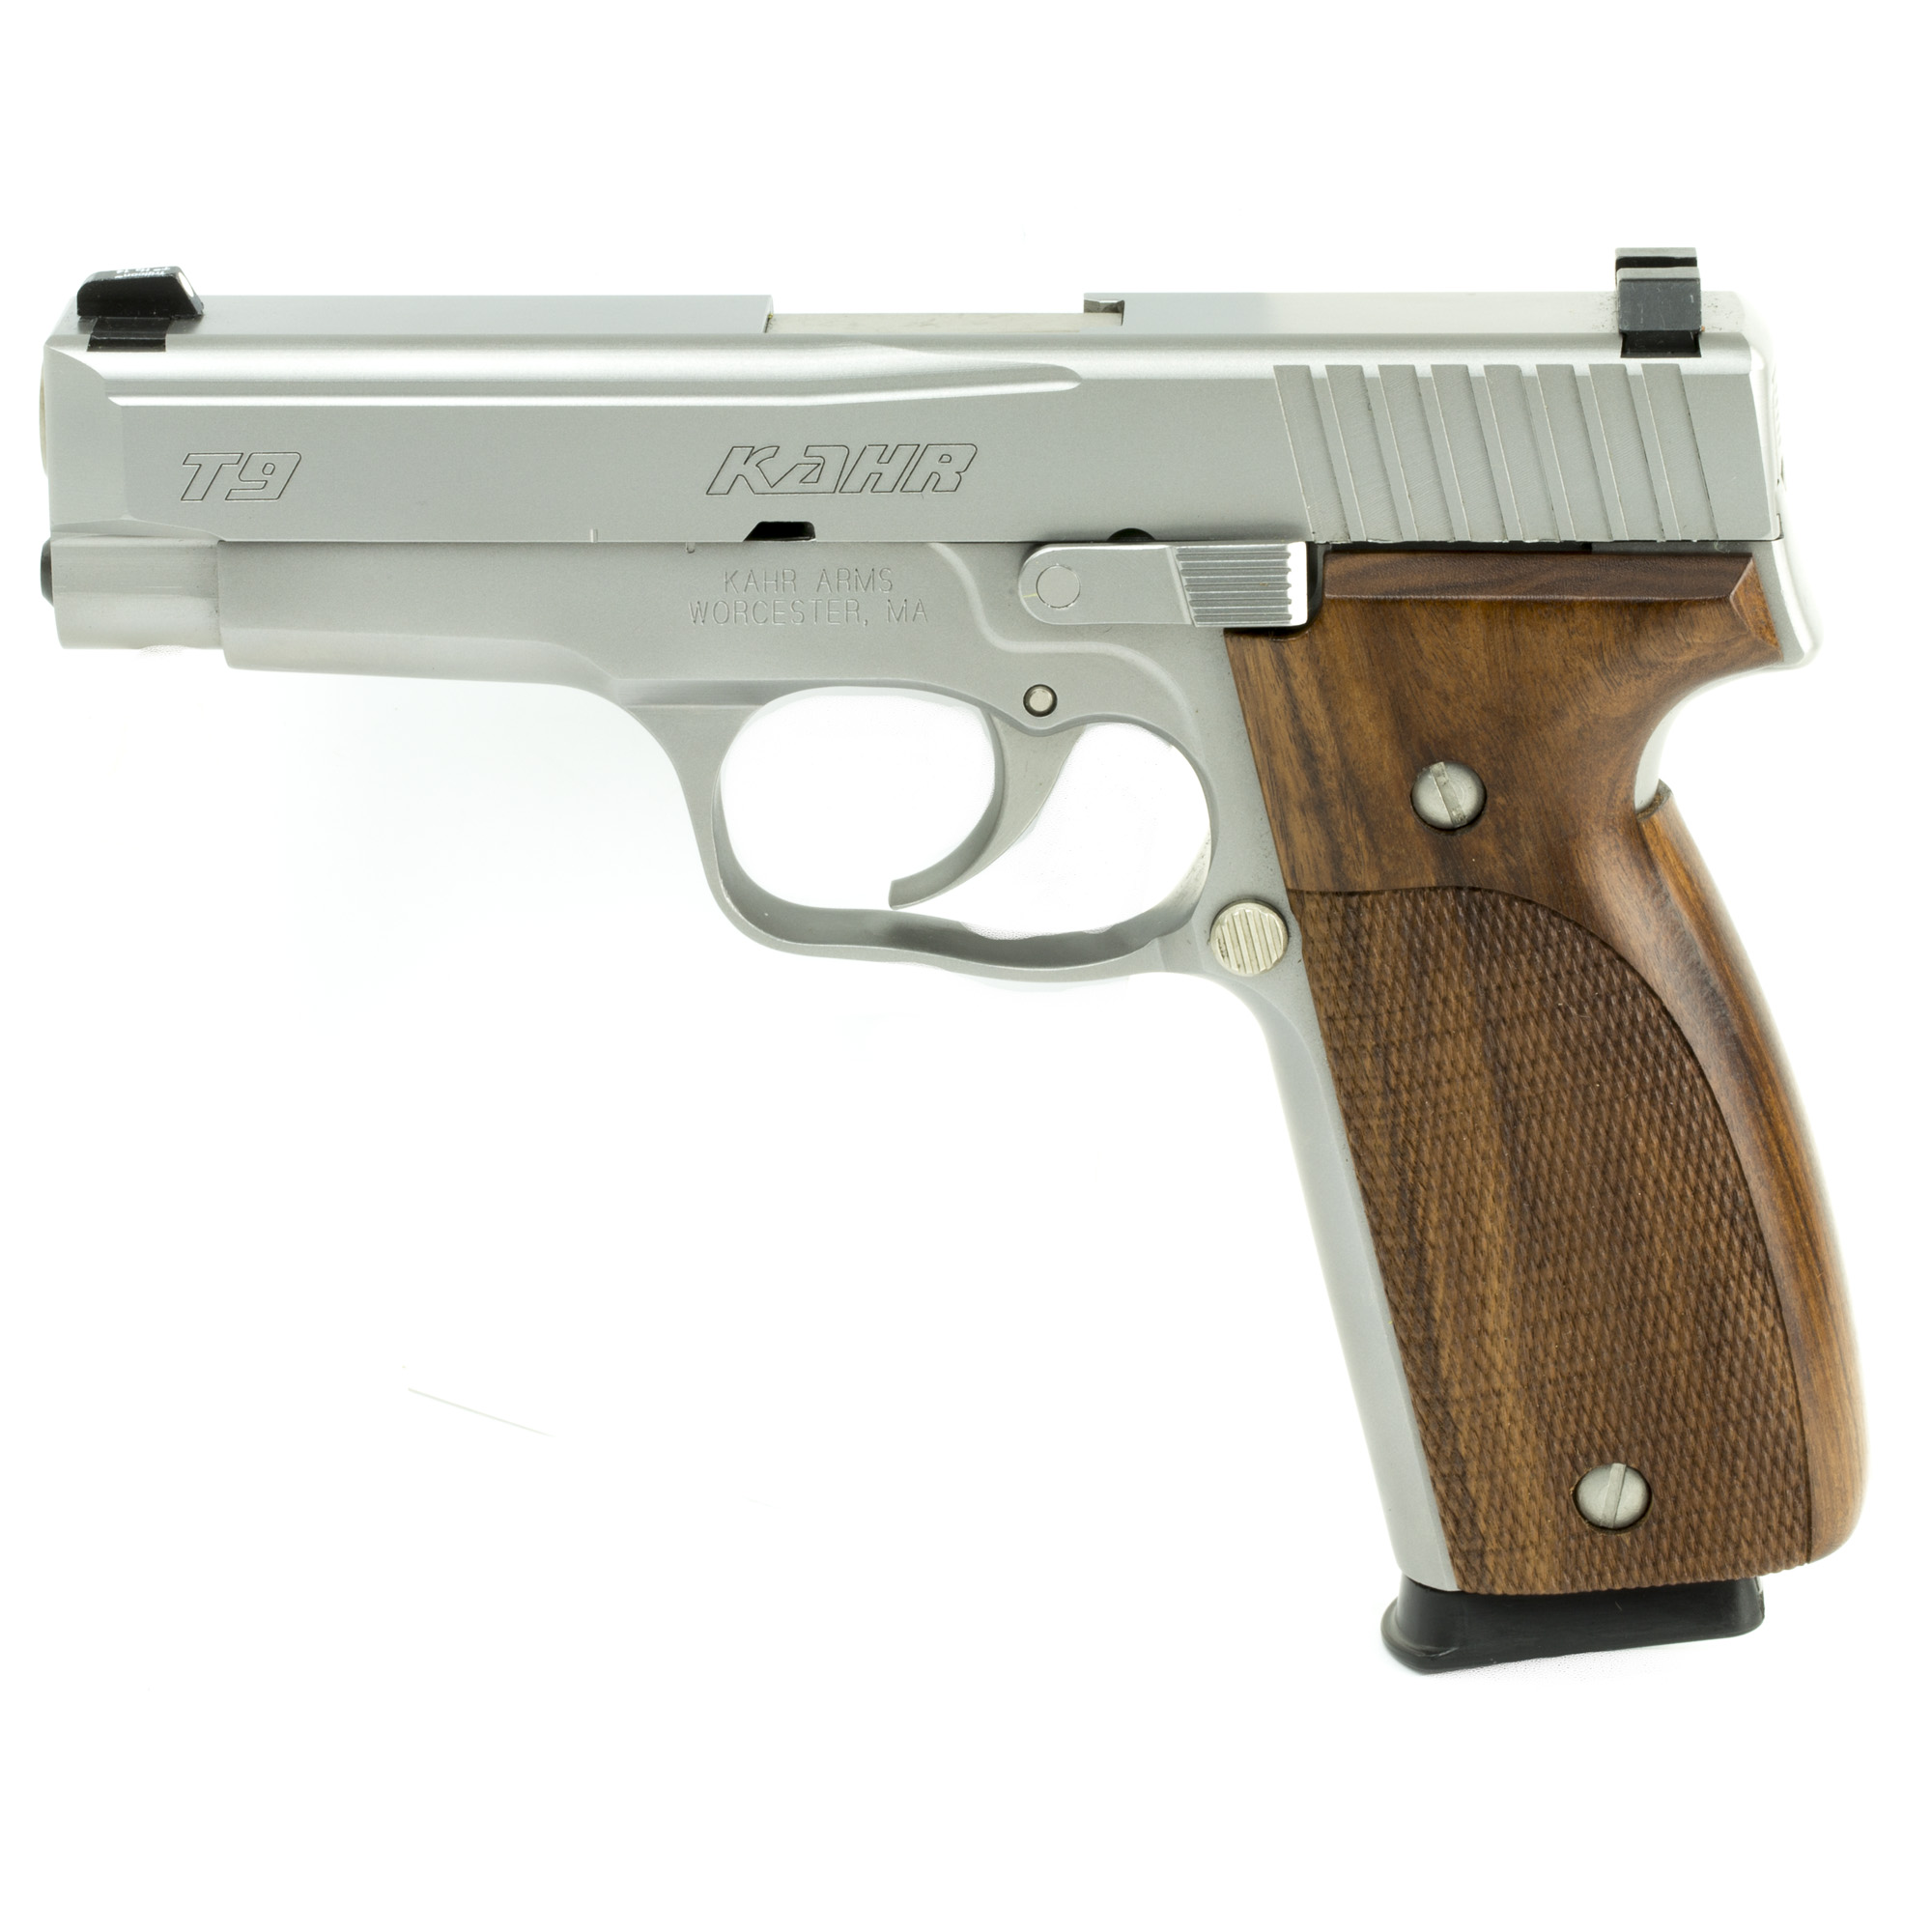 """Kahr Arms T Series offers a full size carry gun with a thin profile in both steel and polymer frames. Featuring a Lothar Walther 4"""" match-grade polygonal-rifled barrel and silky smooth DAO trigger"""" this series provides excellent balance and accuracy."""